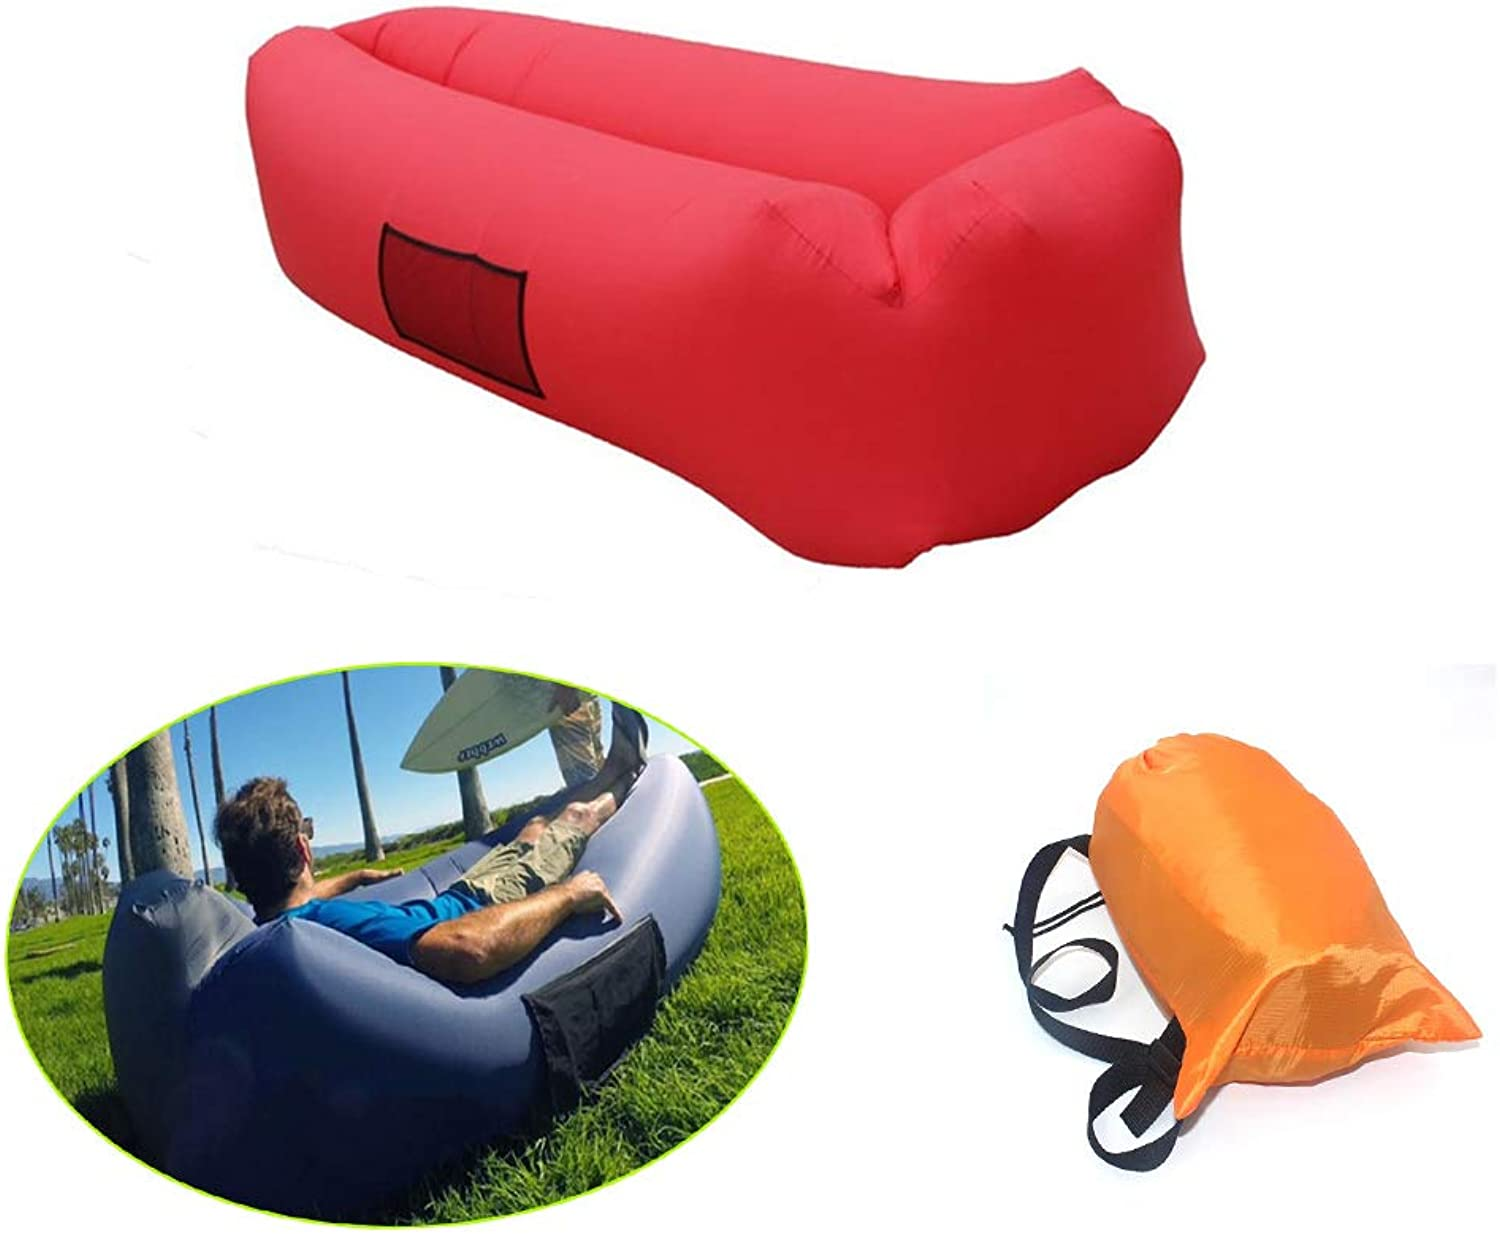 Uhmhome Inflatable Couch Lounger Air Chair Sofa Bed Sleeping Couch Lazy Hangout Sofa Bag Hammock-Portable for Beach Camping Lake Garden